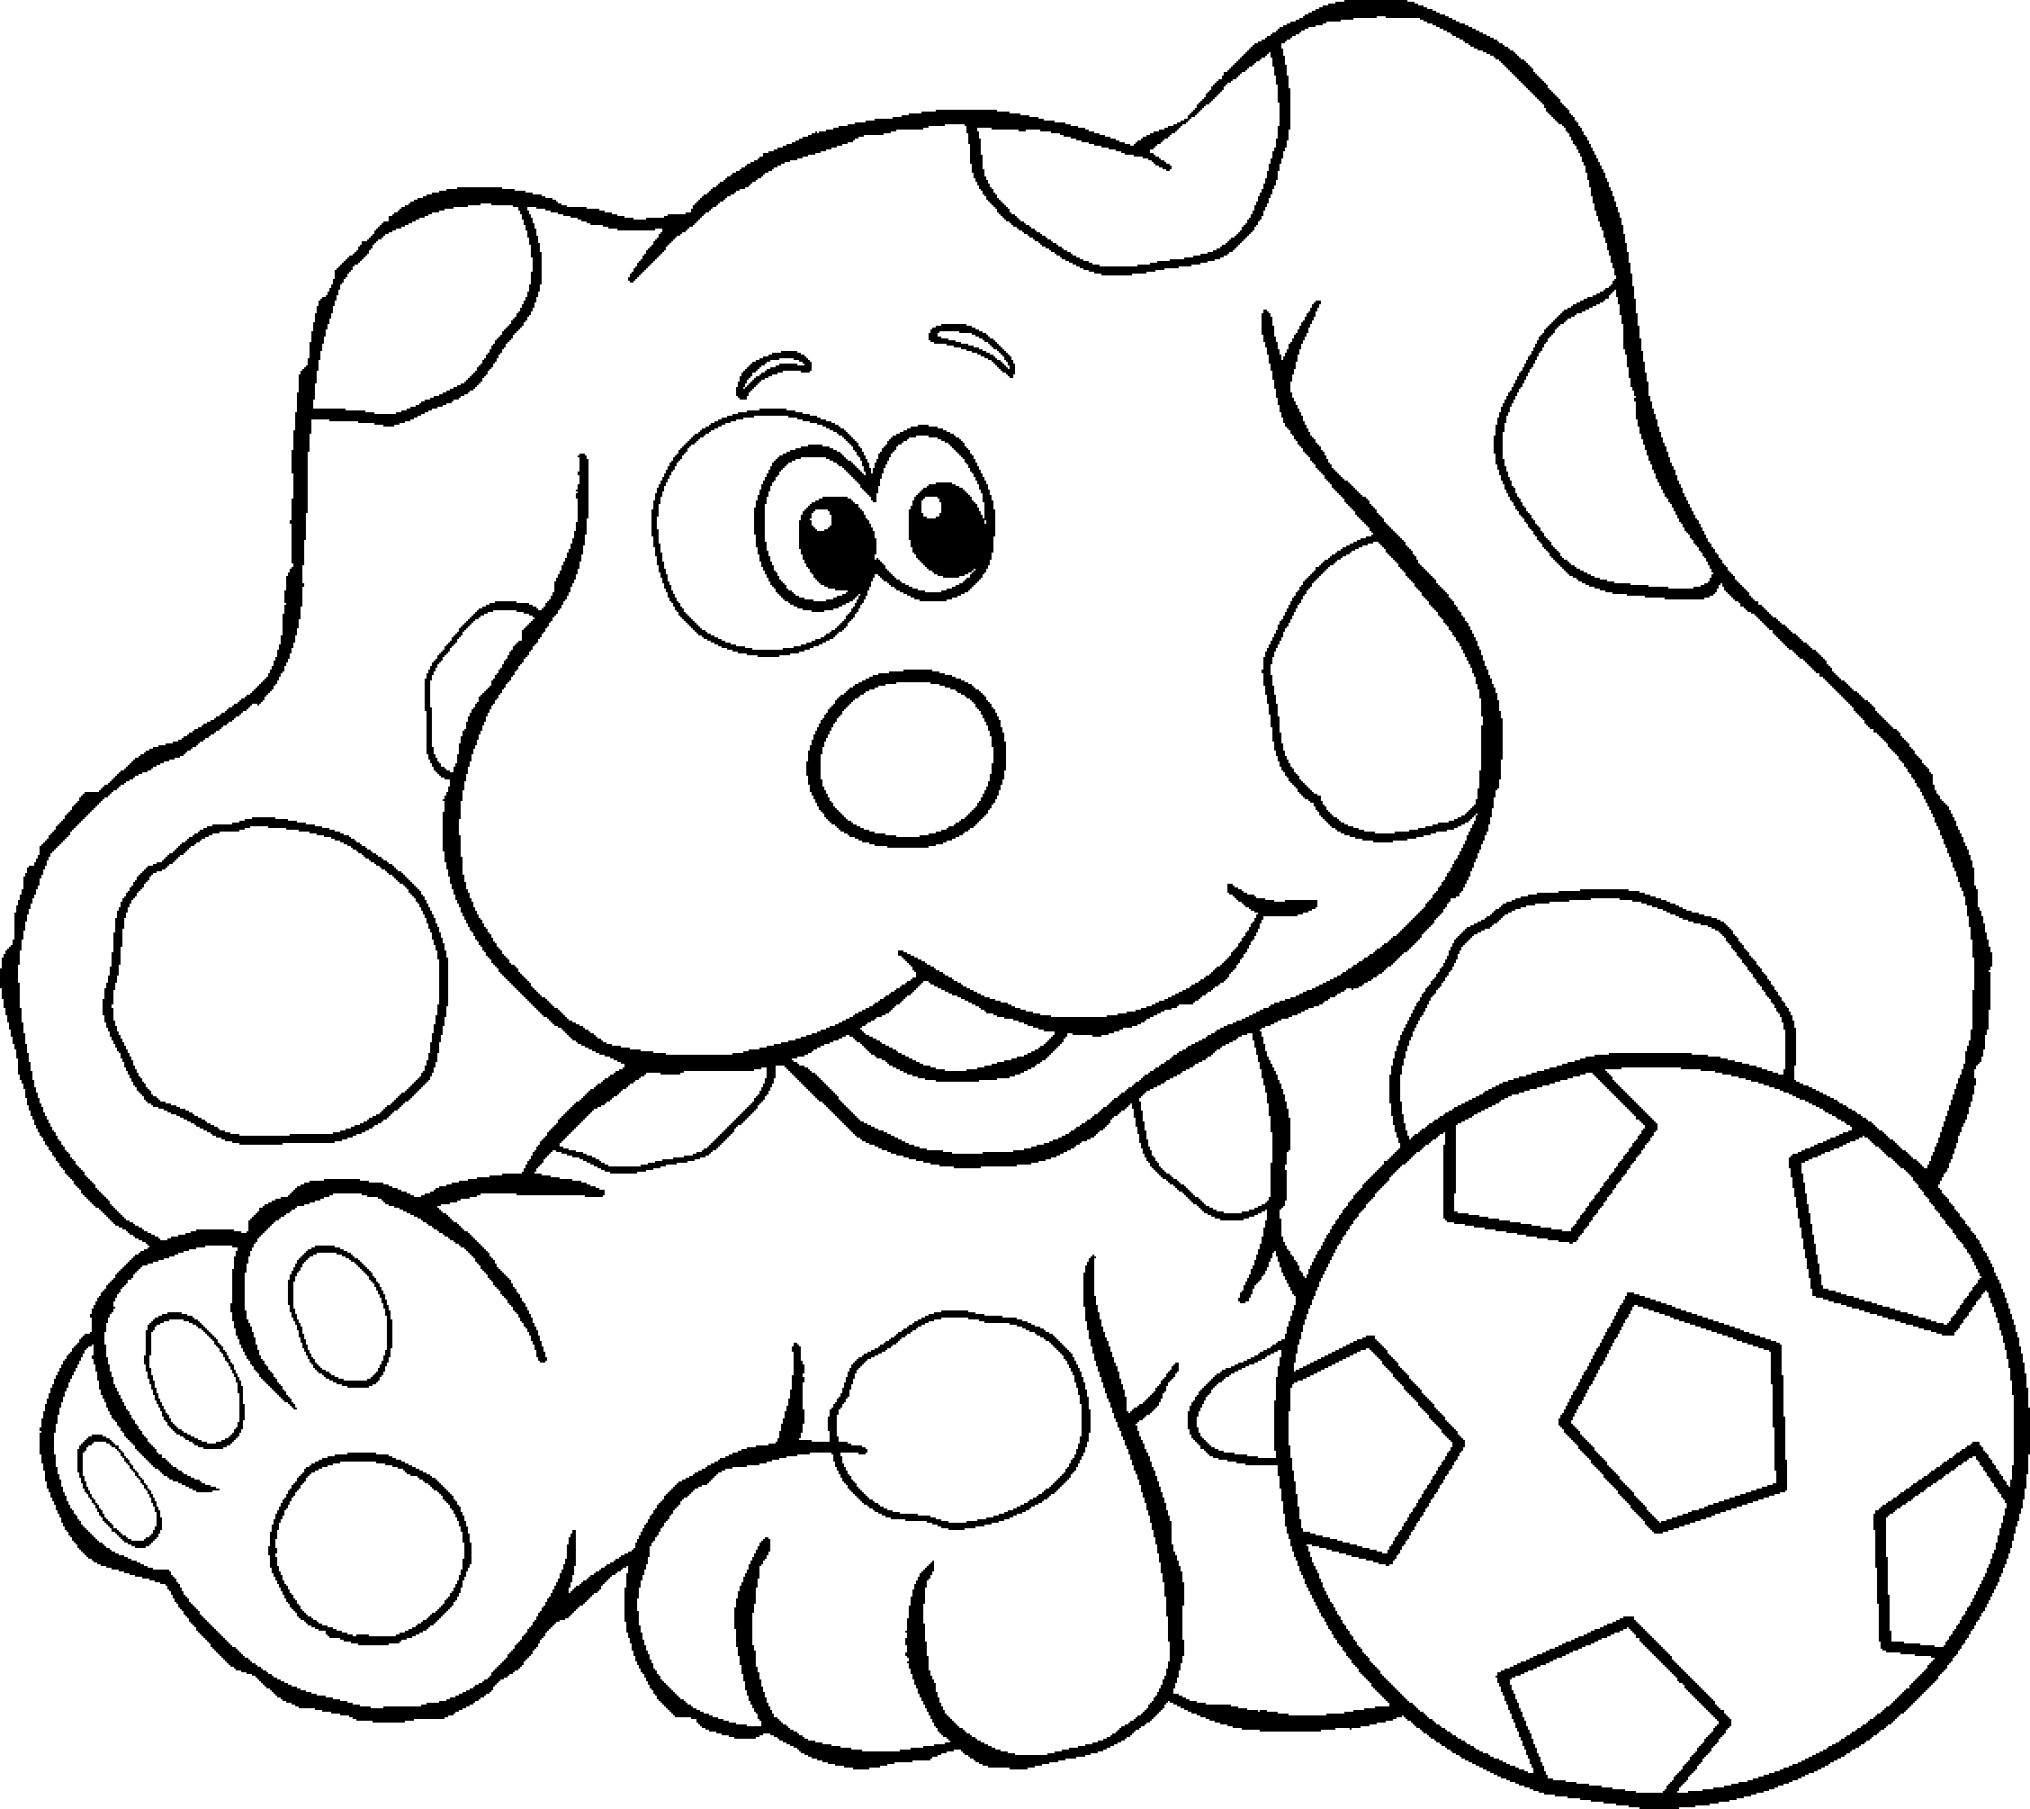 Notebook Coloring Page At Getcolorings